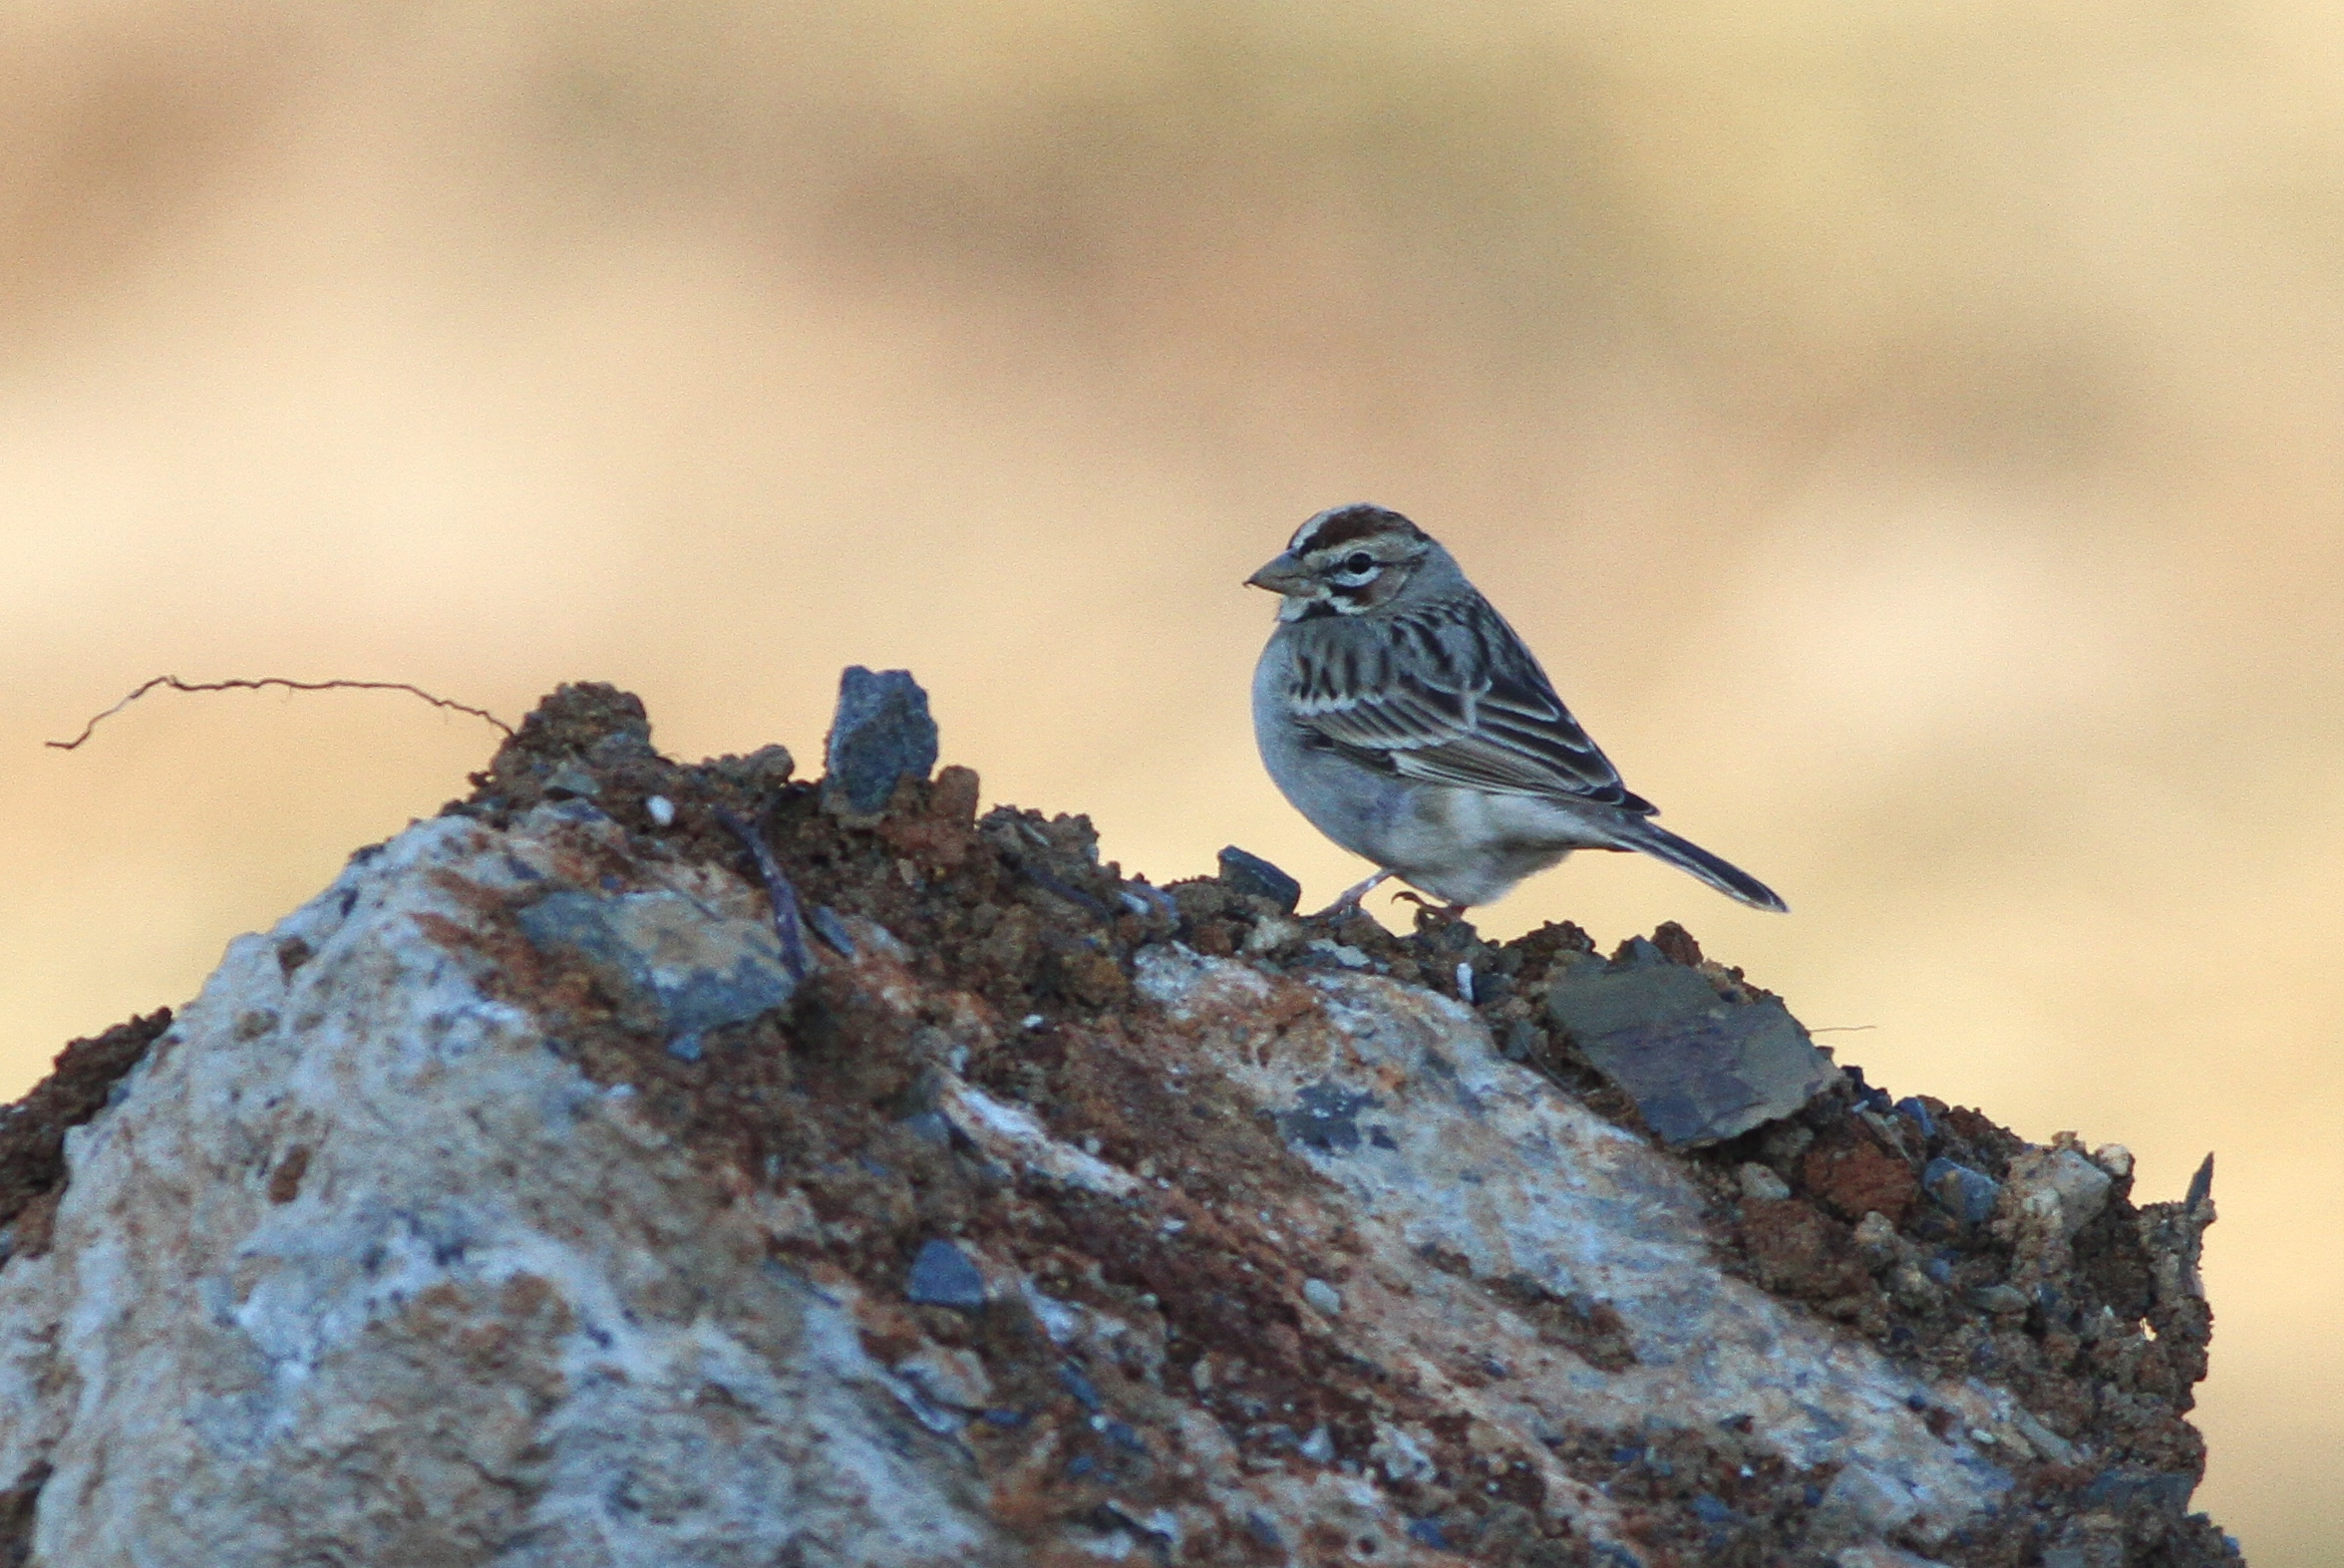 Lark Sparrow - Cumberland County, PA (Photo by Alex Lamoreaux)